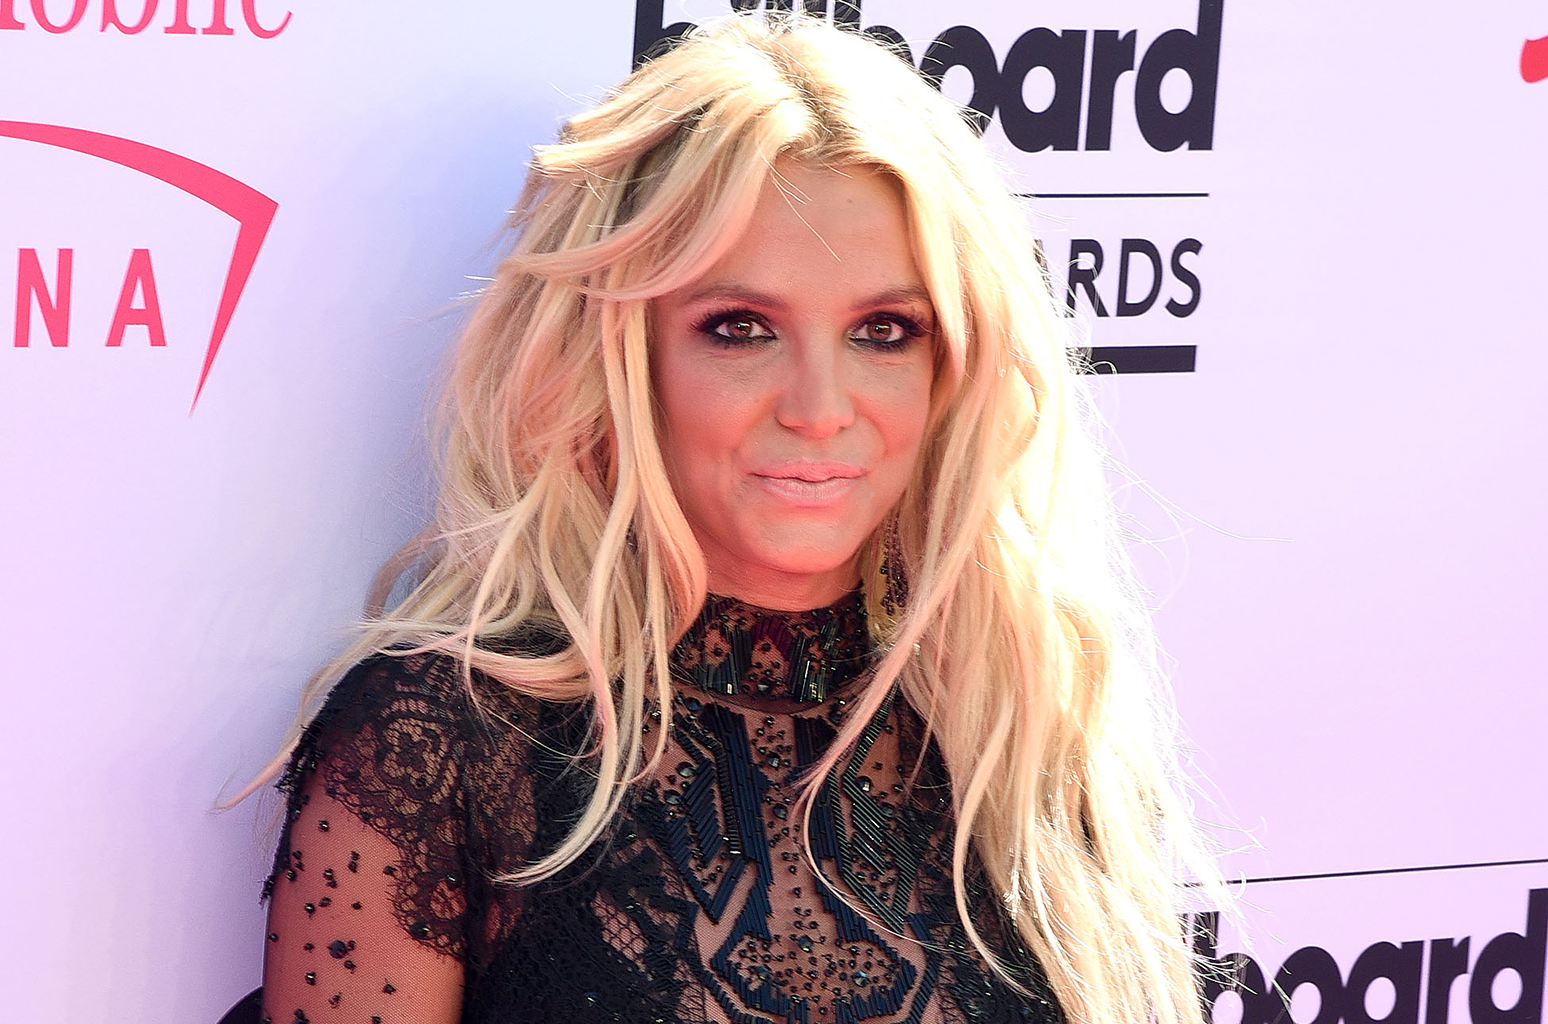 Britney Spears Raising Money for Louisiana Flood Victims